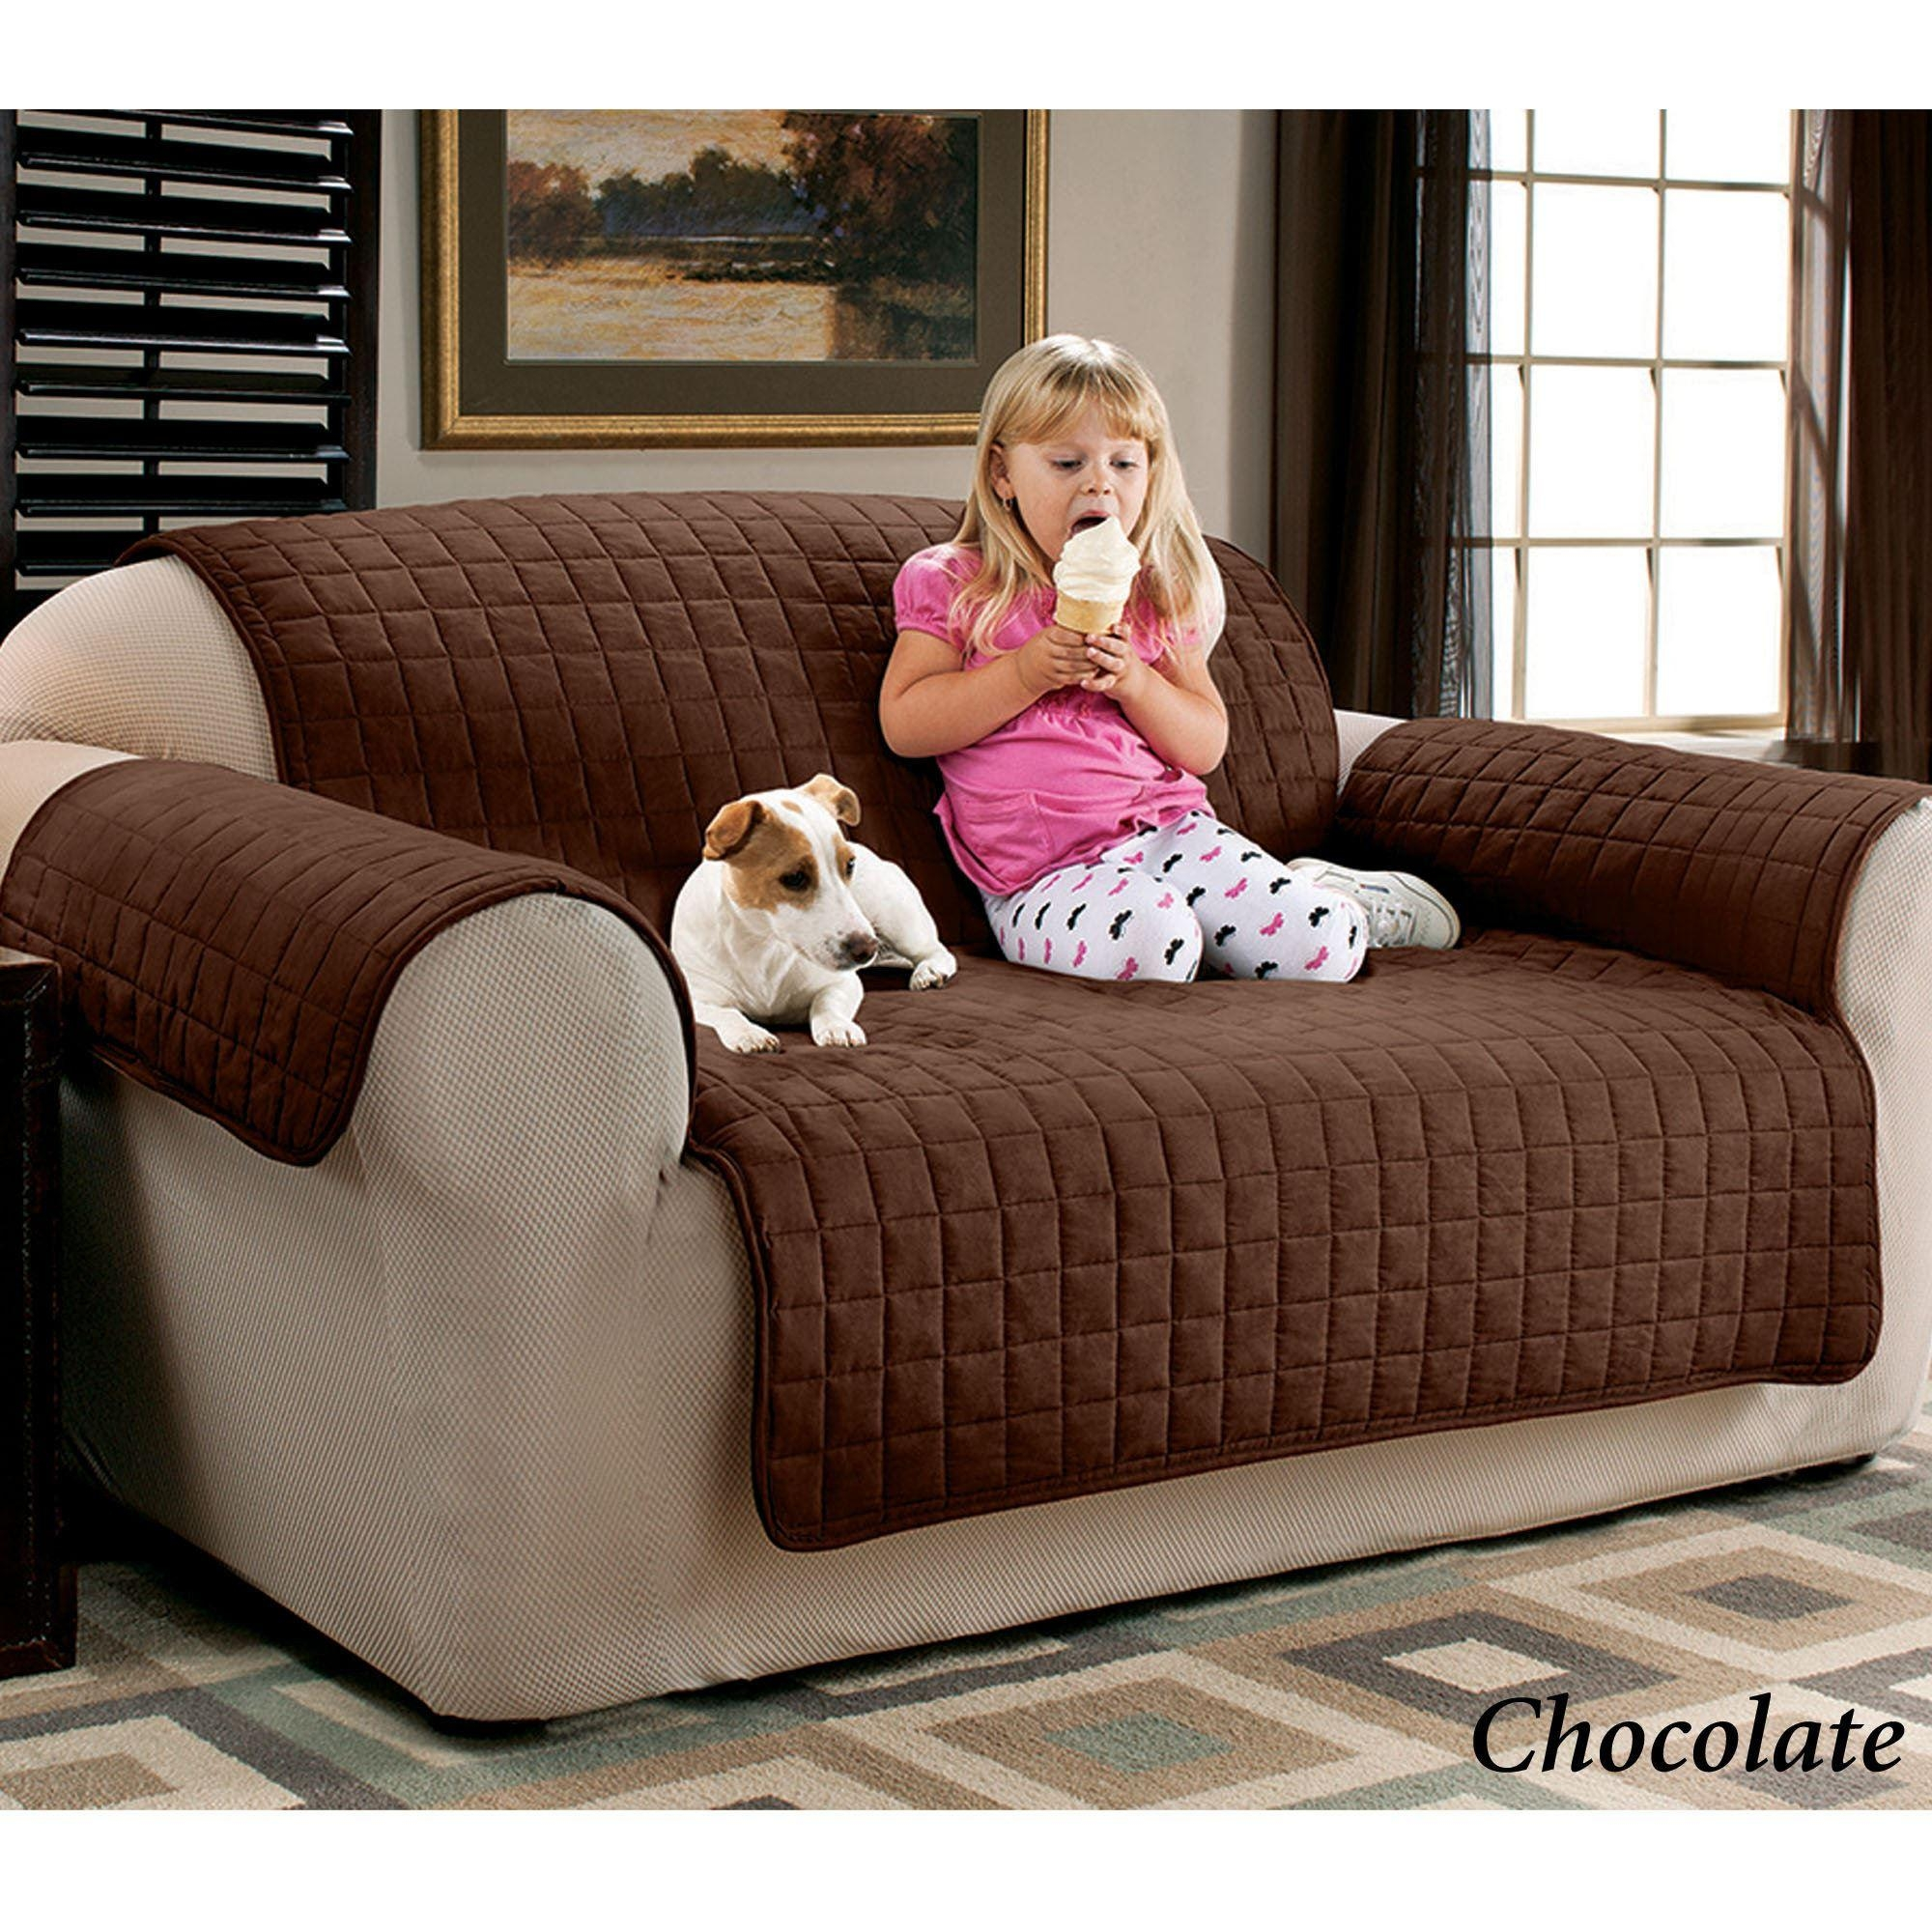 Faux Suede Pet Furniture Covers For Sofas, Loveseats, And Chairs Pertaining To Dog Sofas And Chairs (View 6 of 20)